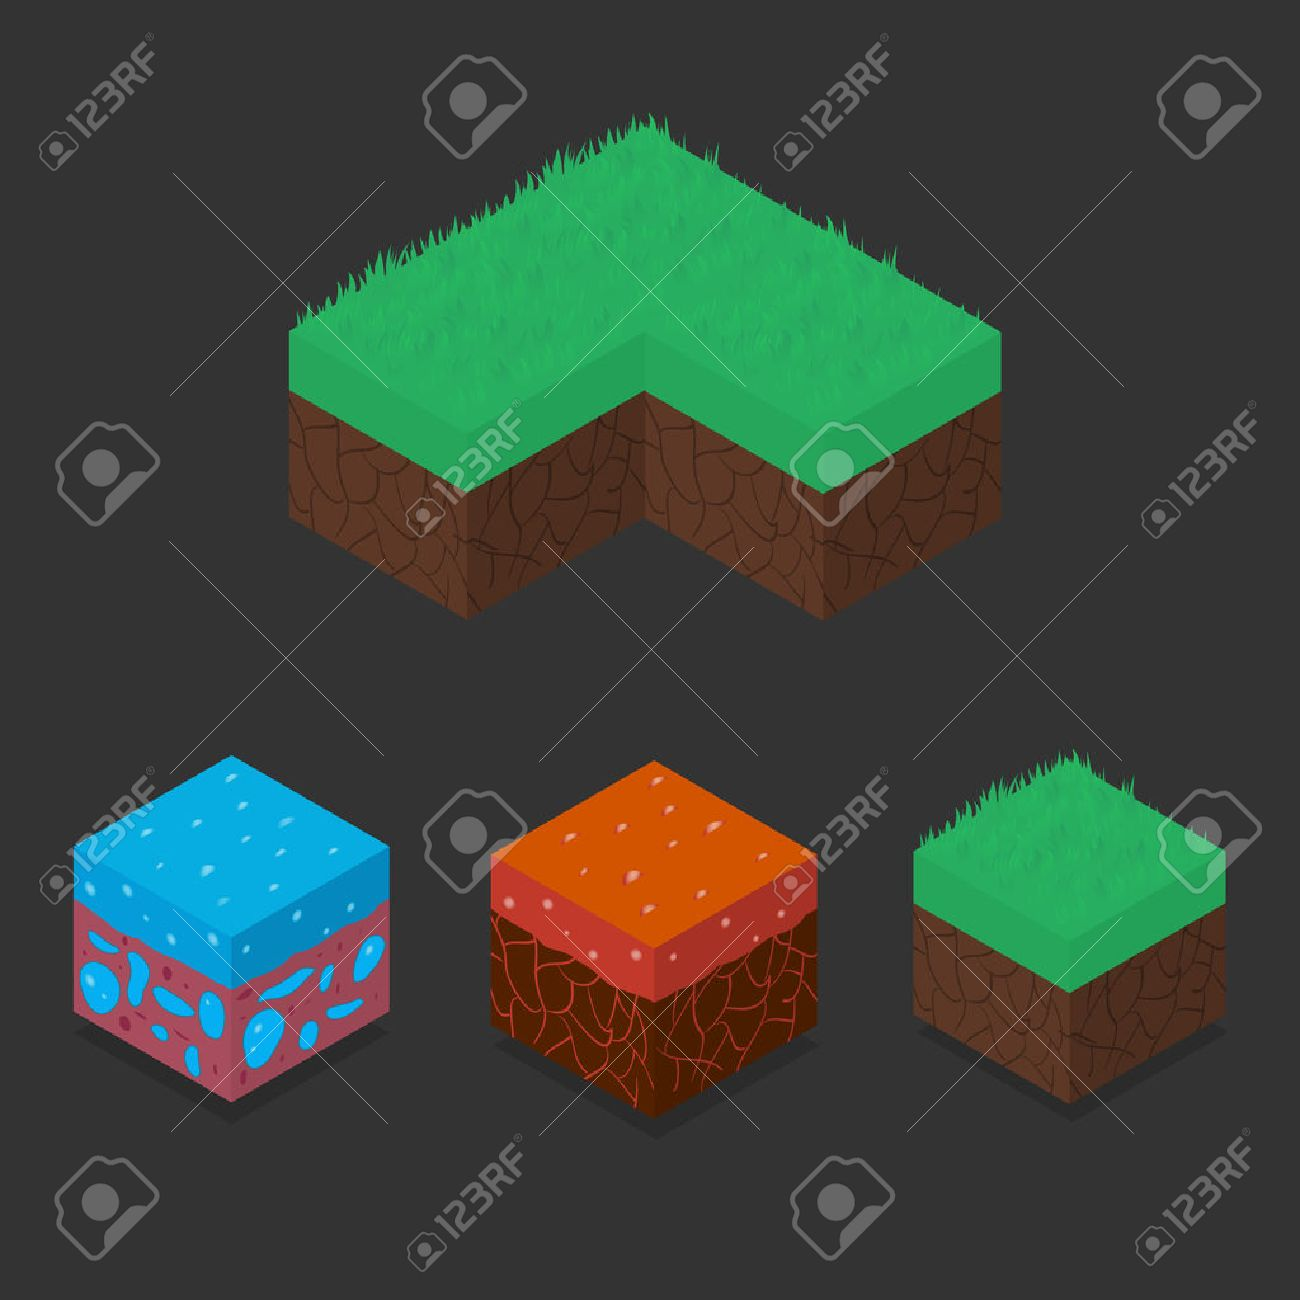 Collection set of 3D Isometric Landscape Cubes - Ground Grass,